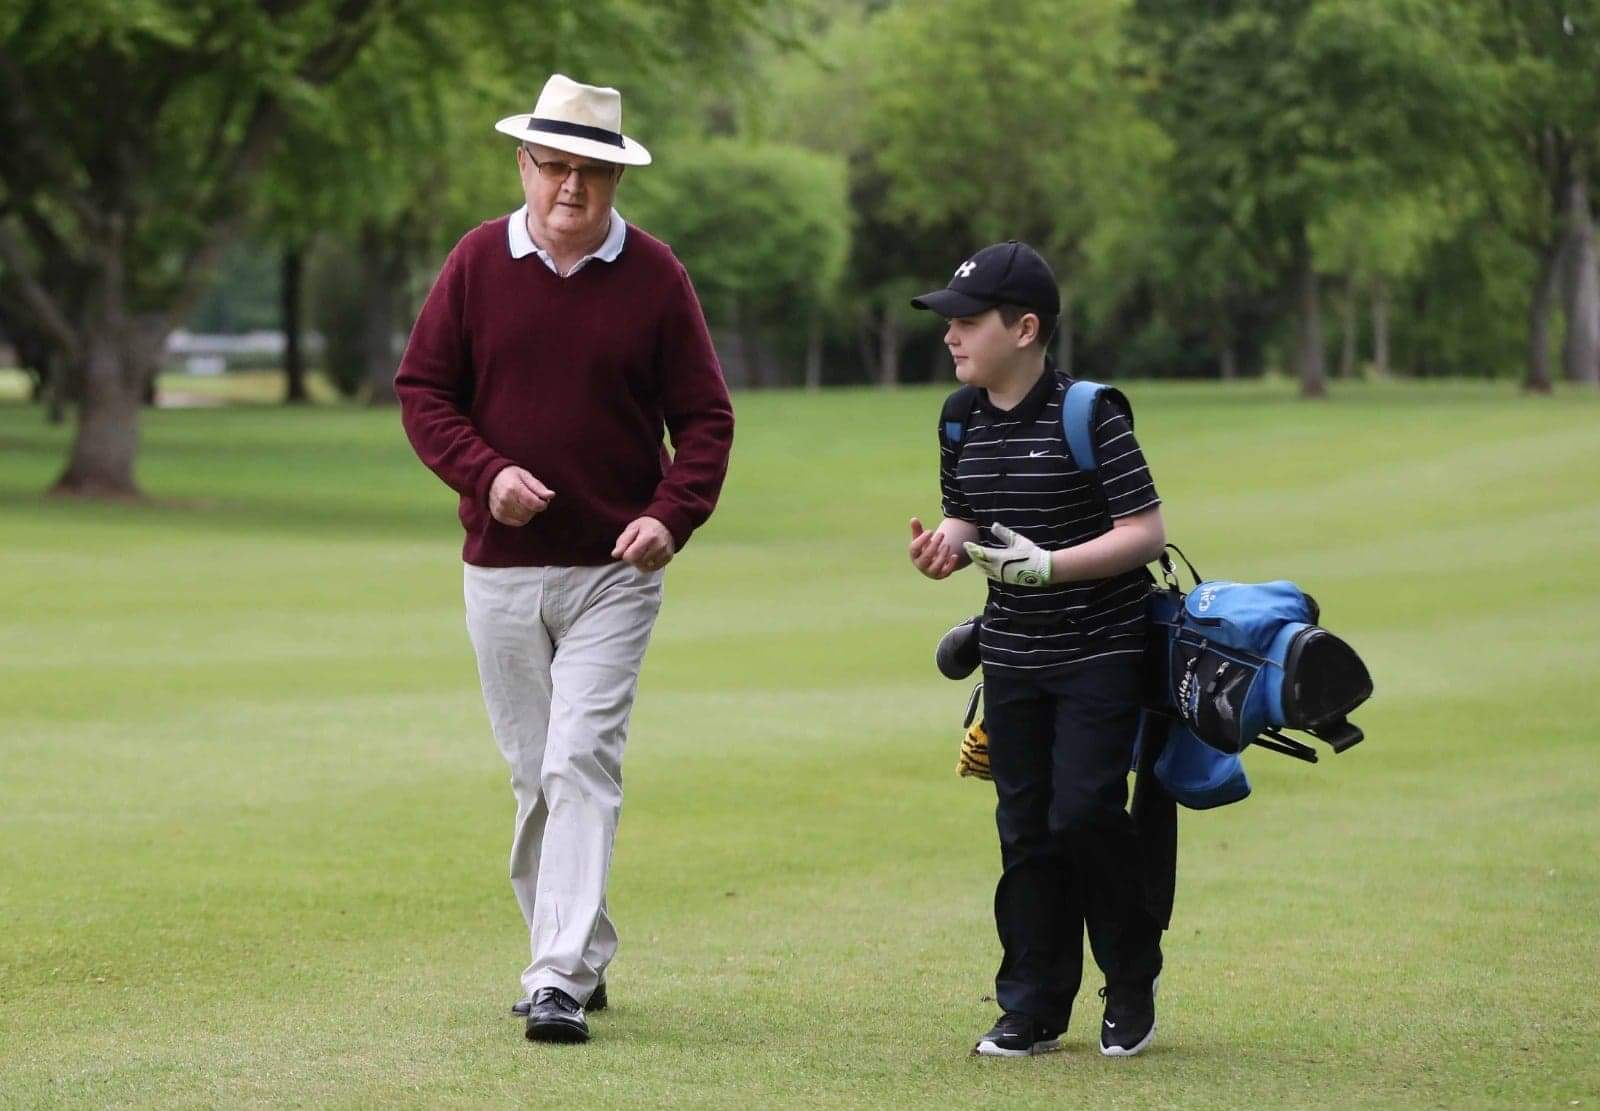 DREAM ROUND: Aaron O'Reilly and his granddad Kevin on the fairway at Dunmurry Golf Club